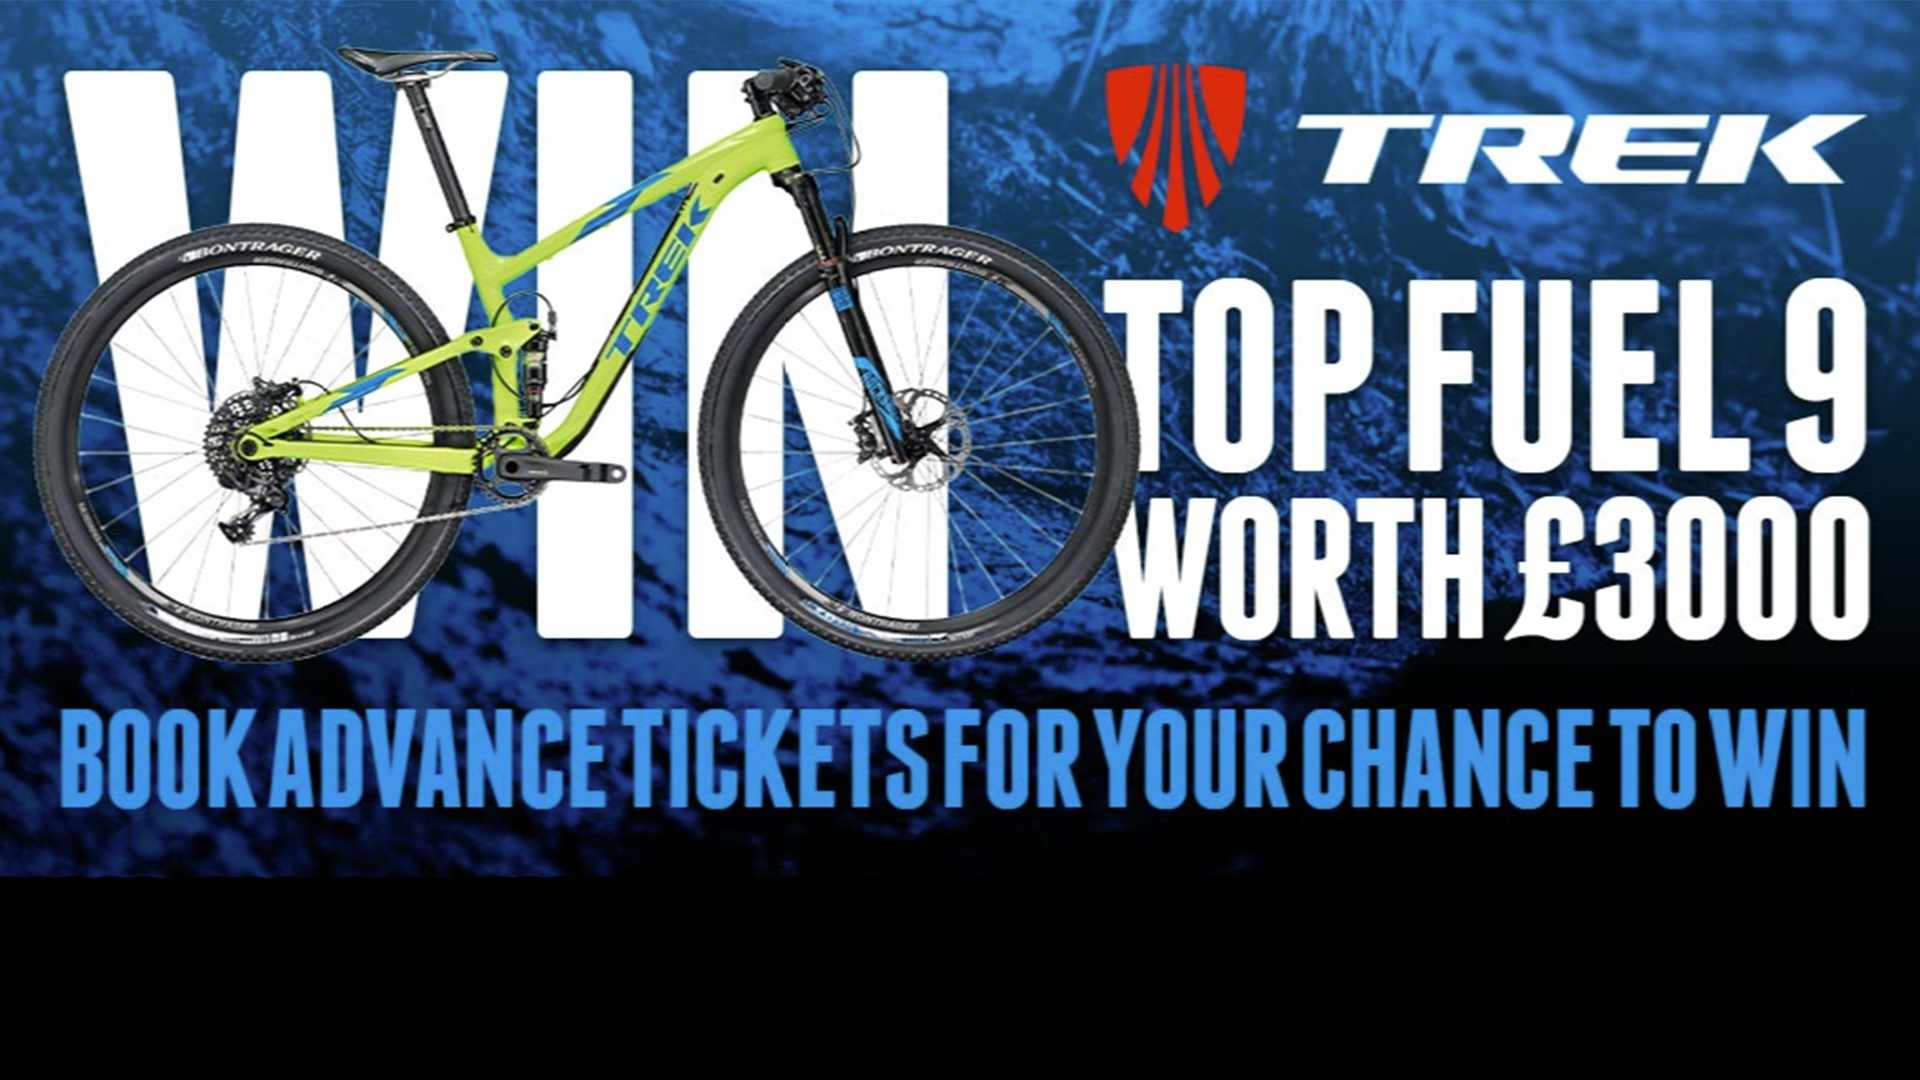 Win a £3,000 Trek Top Fuel 9 with The Cycle Show